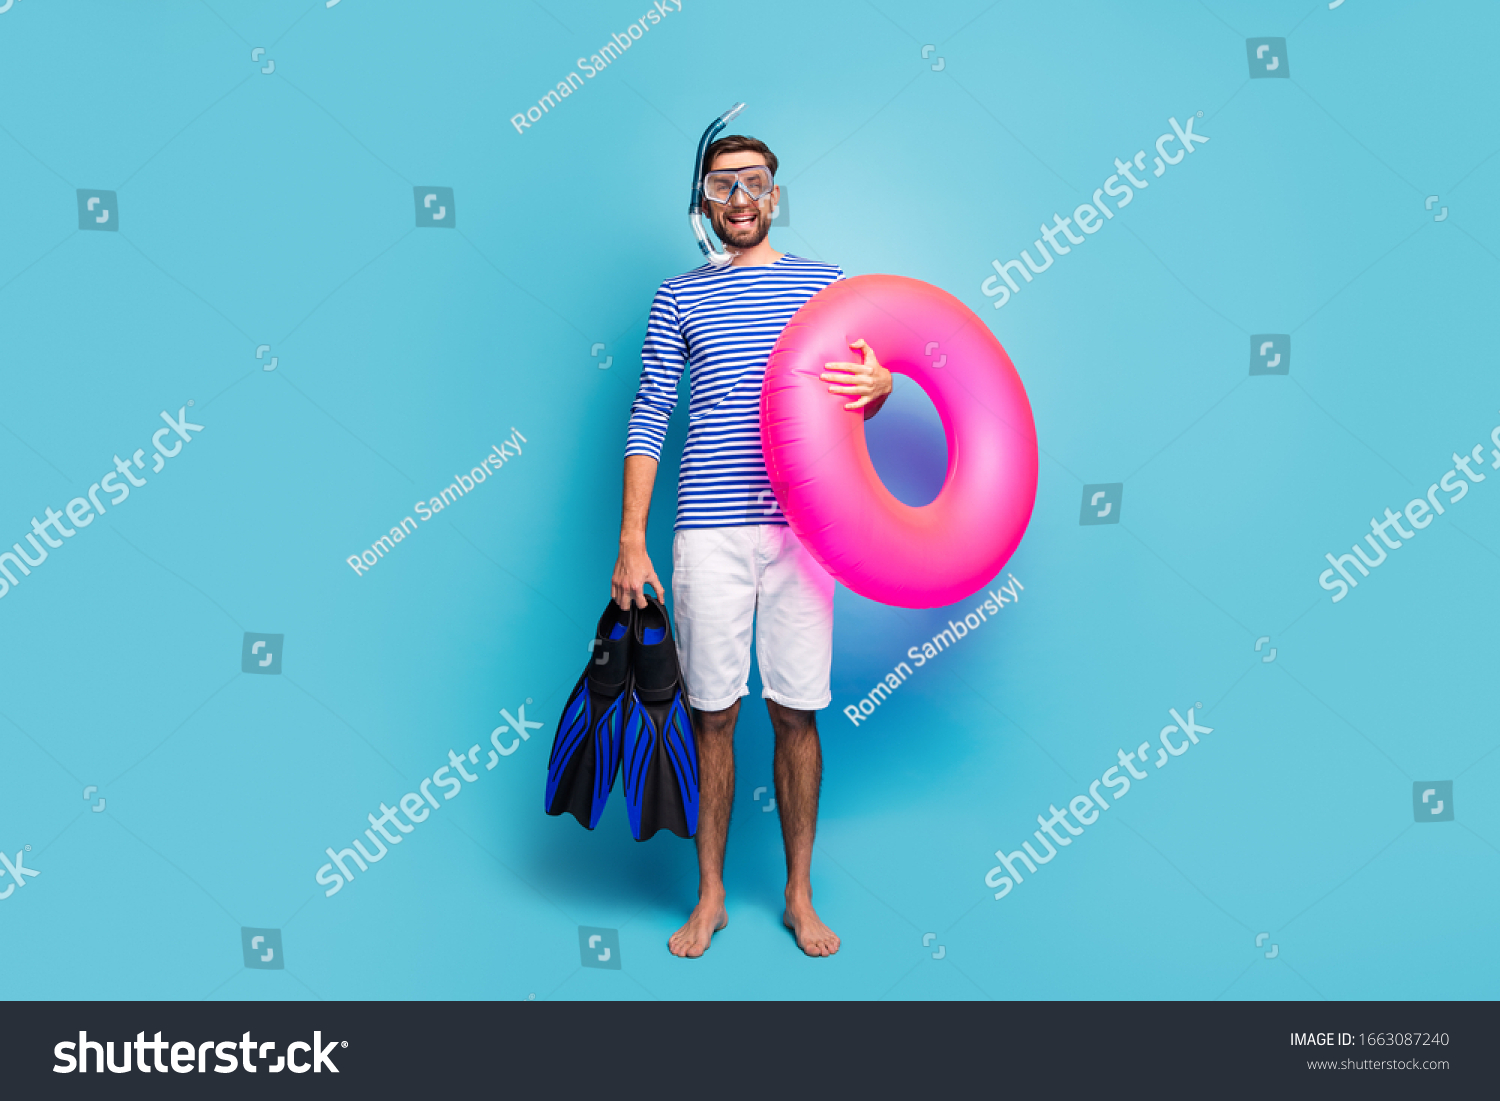 Full body photo of funny excited guy tourist swimmer hold underwater mask breathing tube flippers pink lifebuoy wear striped sailor shirt shorts isolated blue color background #1663087240